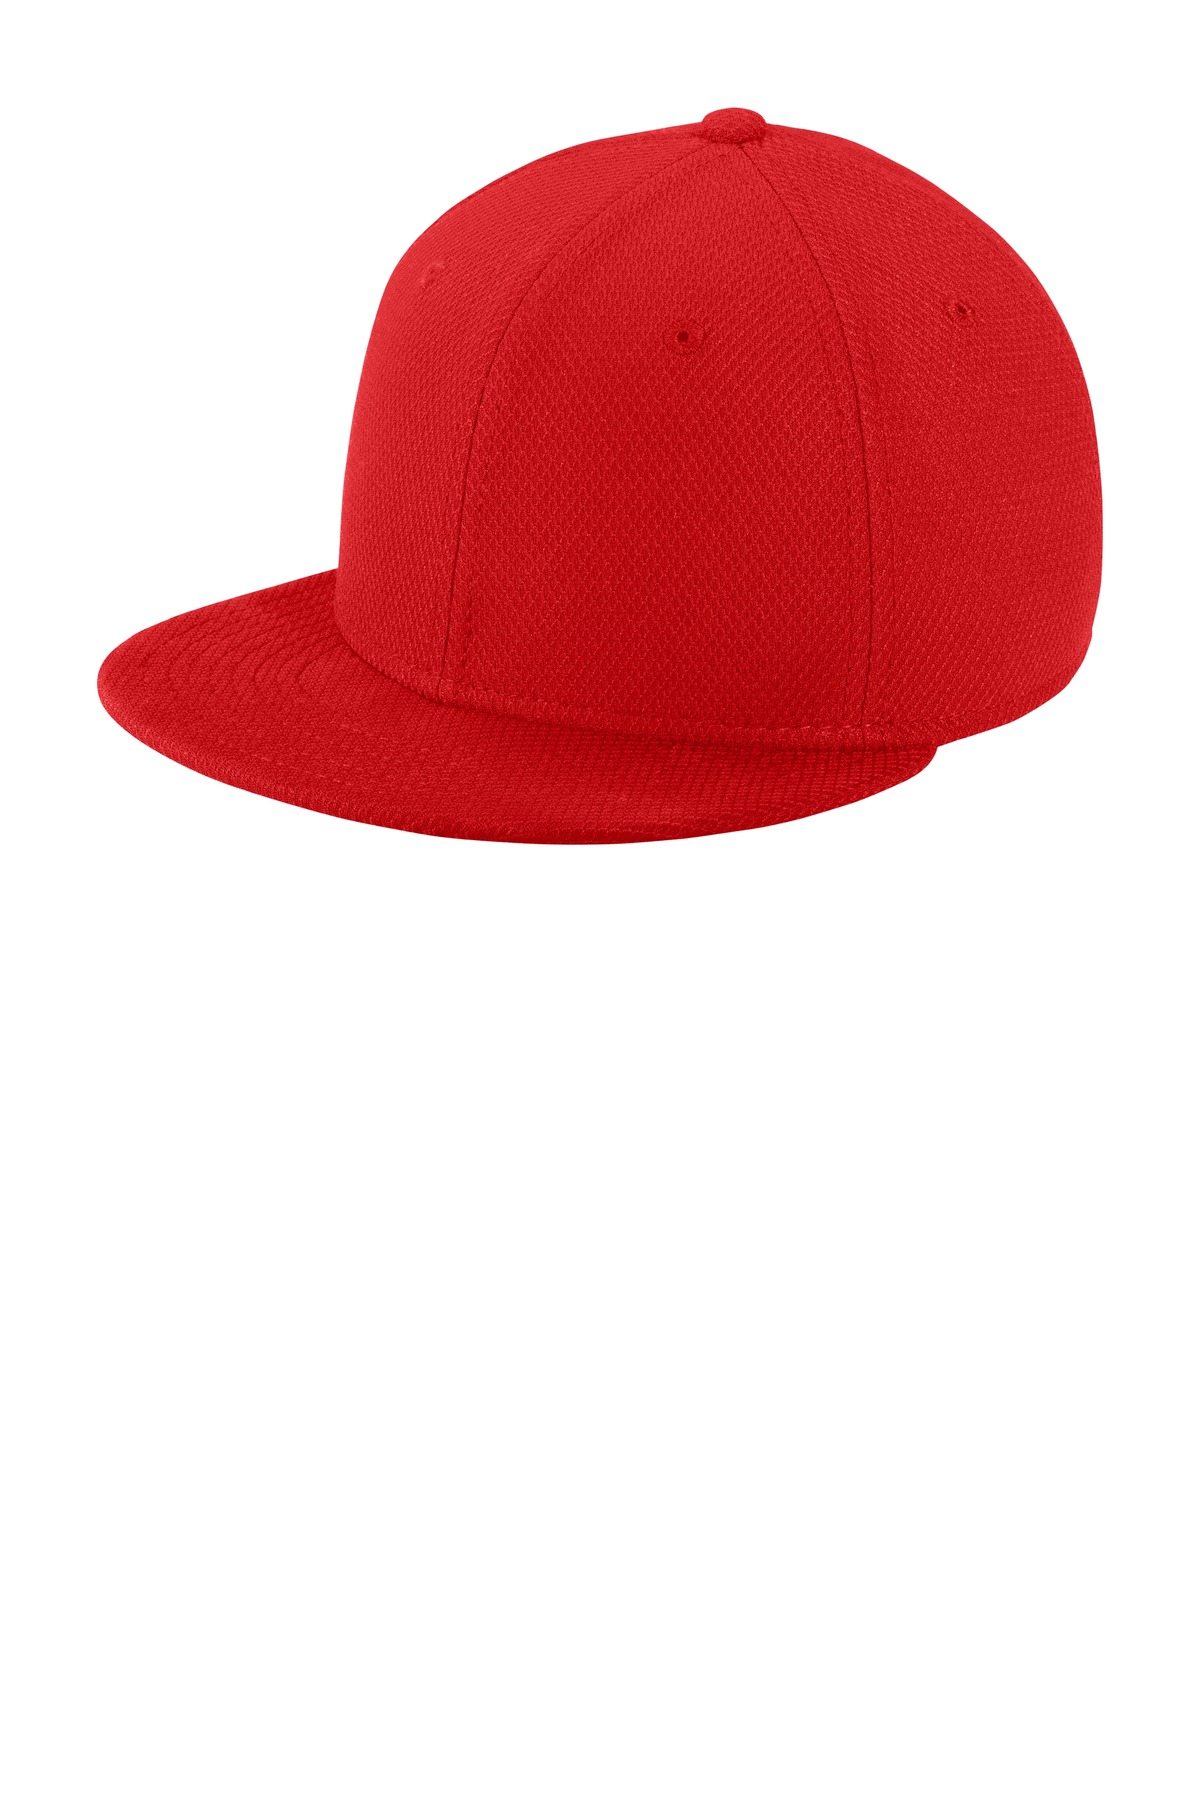 New Era Youth Original Fit Diamond Era Flat Bill Snapback Cap. NE304